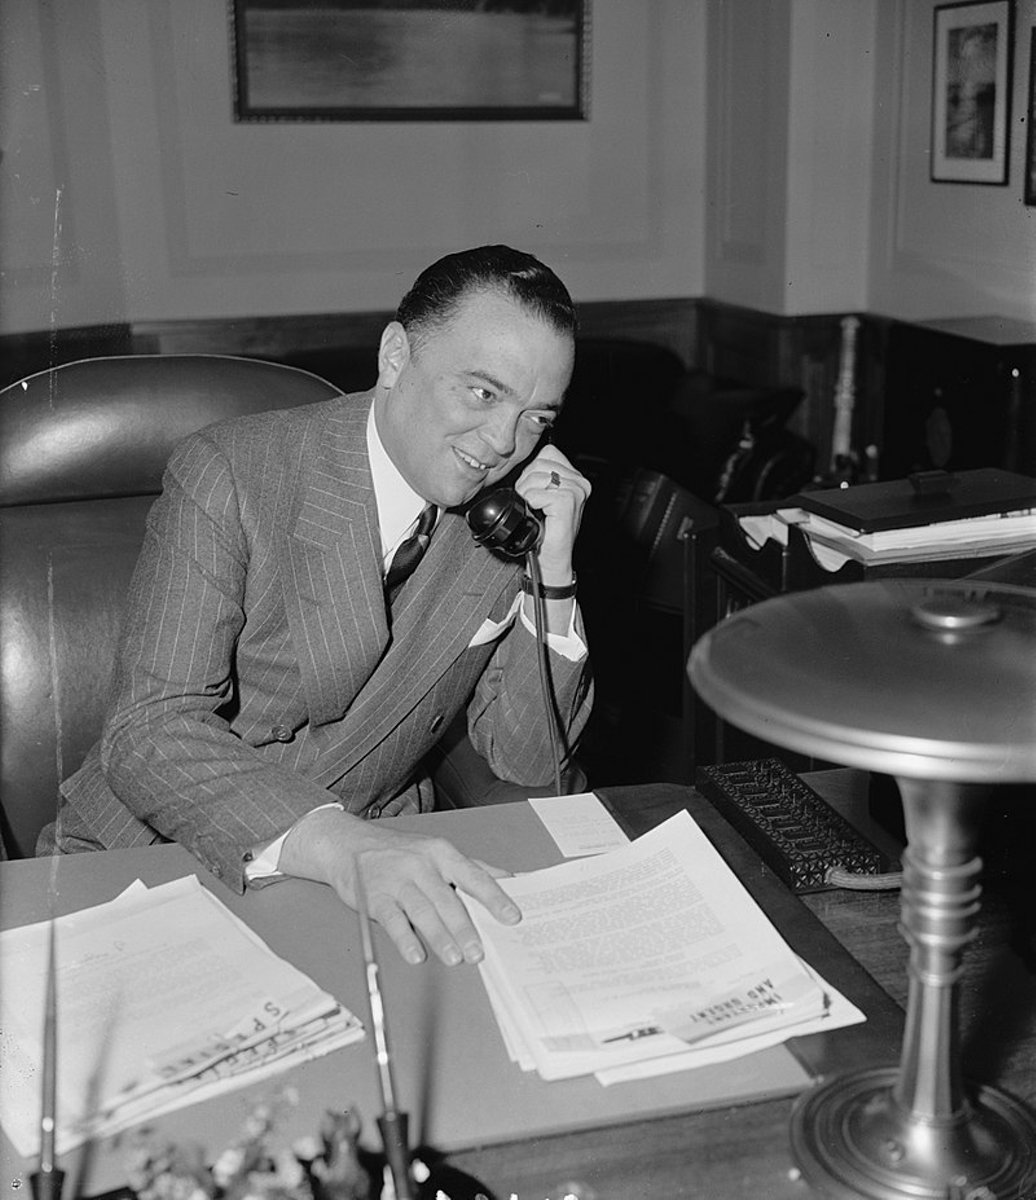 800px-Director_Hoover_1940_Office